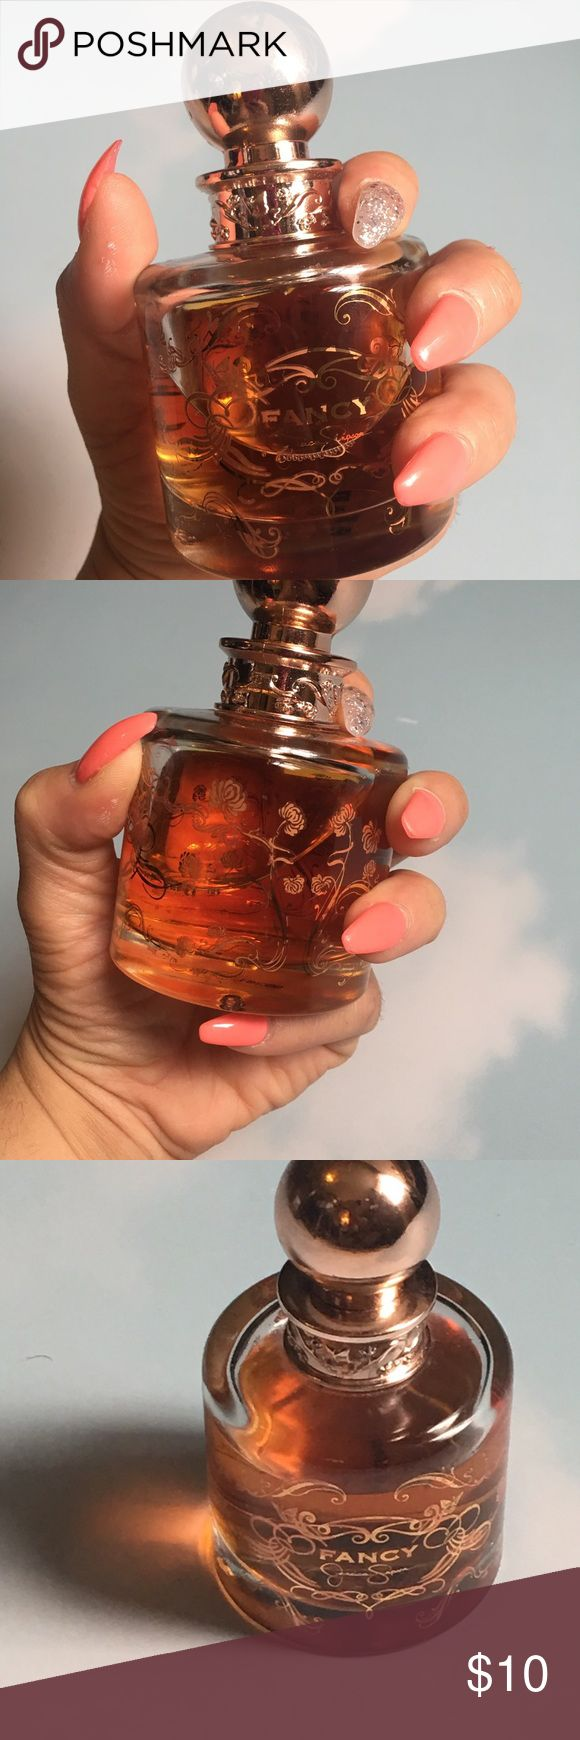 "Jessica Simpson Jessica Simpson perfume ""Fancy"".  Used 4x's, no box, bottle is full. Smells warm and sweet very similar to the original Burberry perfume. Jessica Simpson Other"